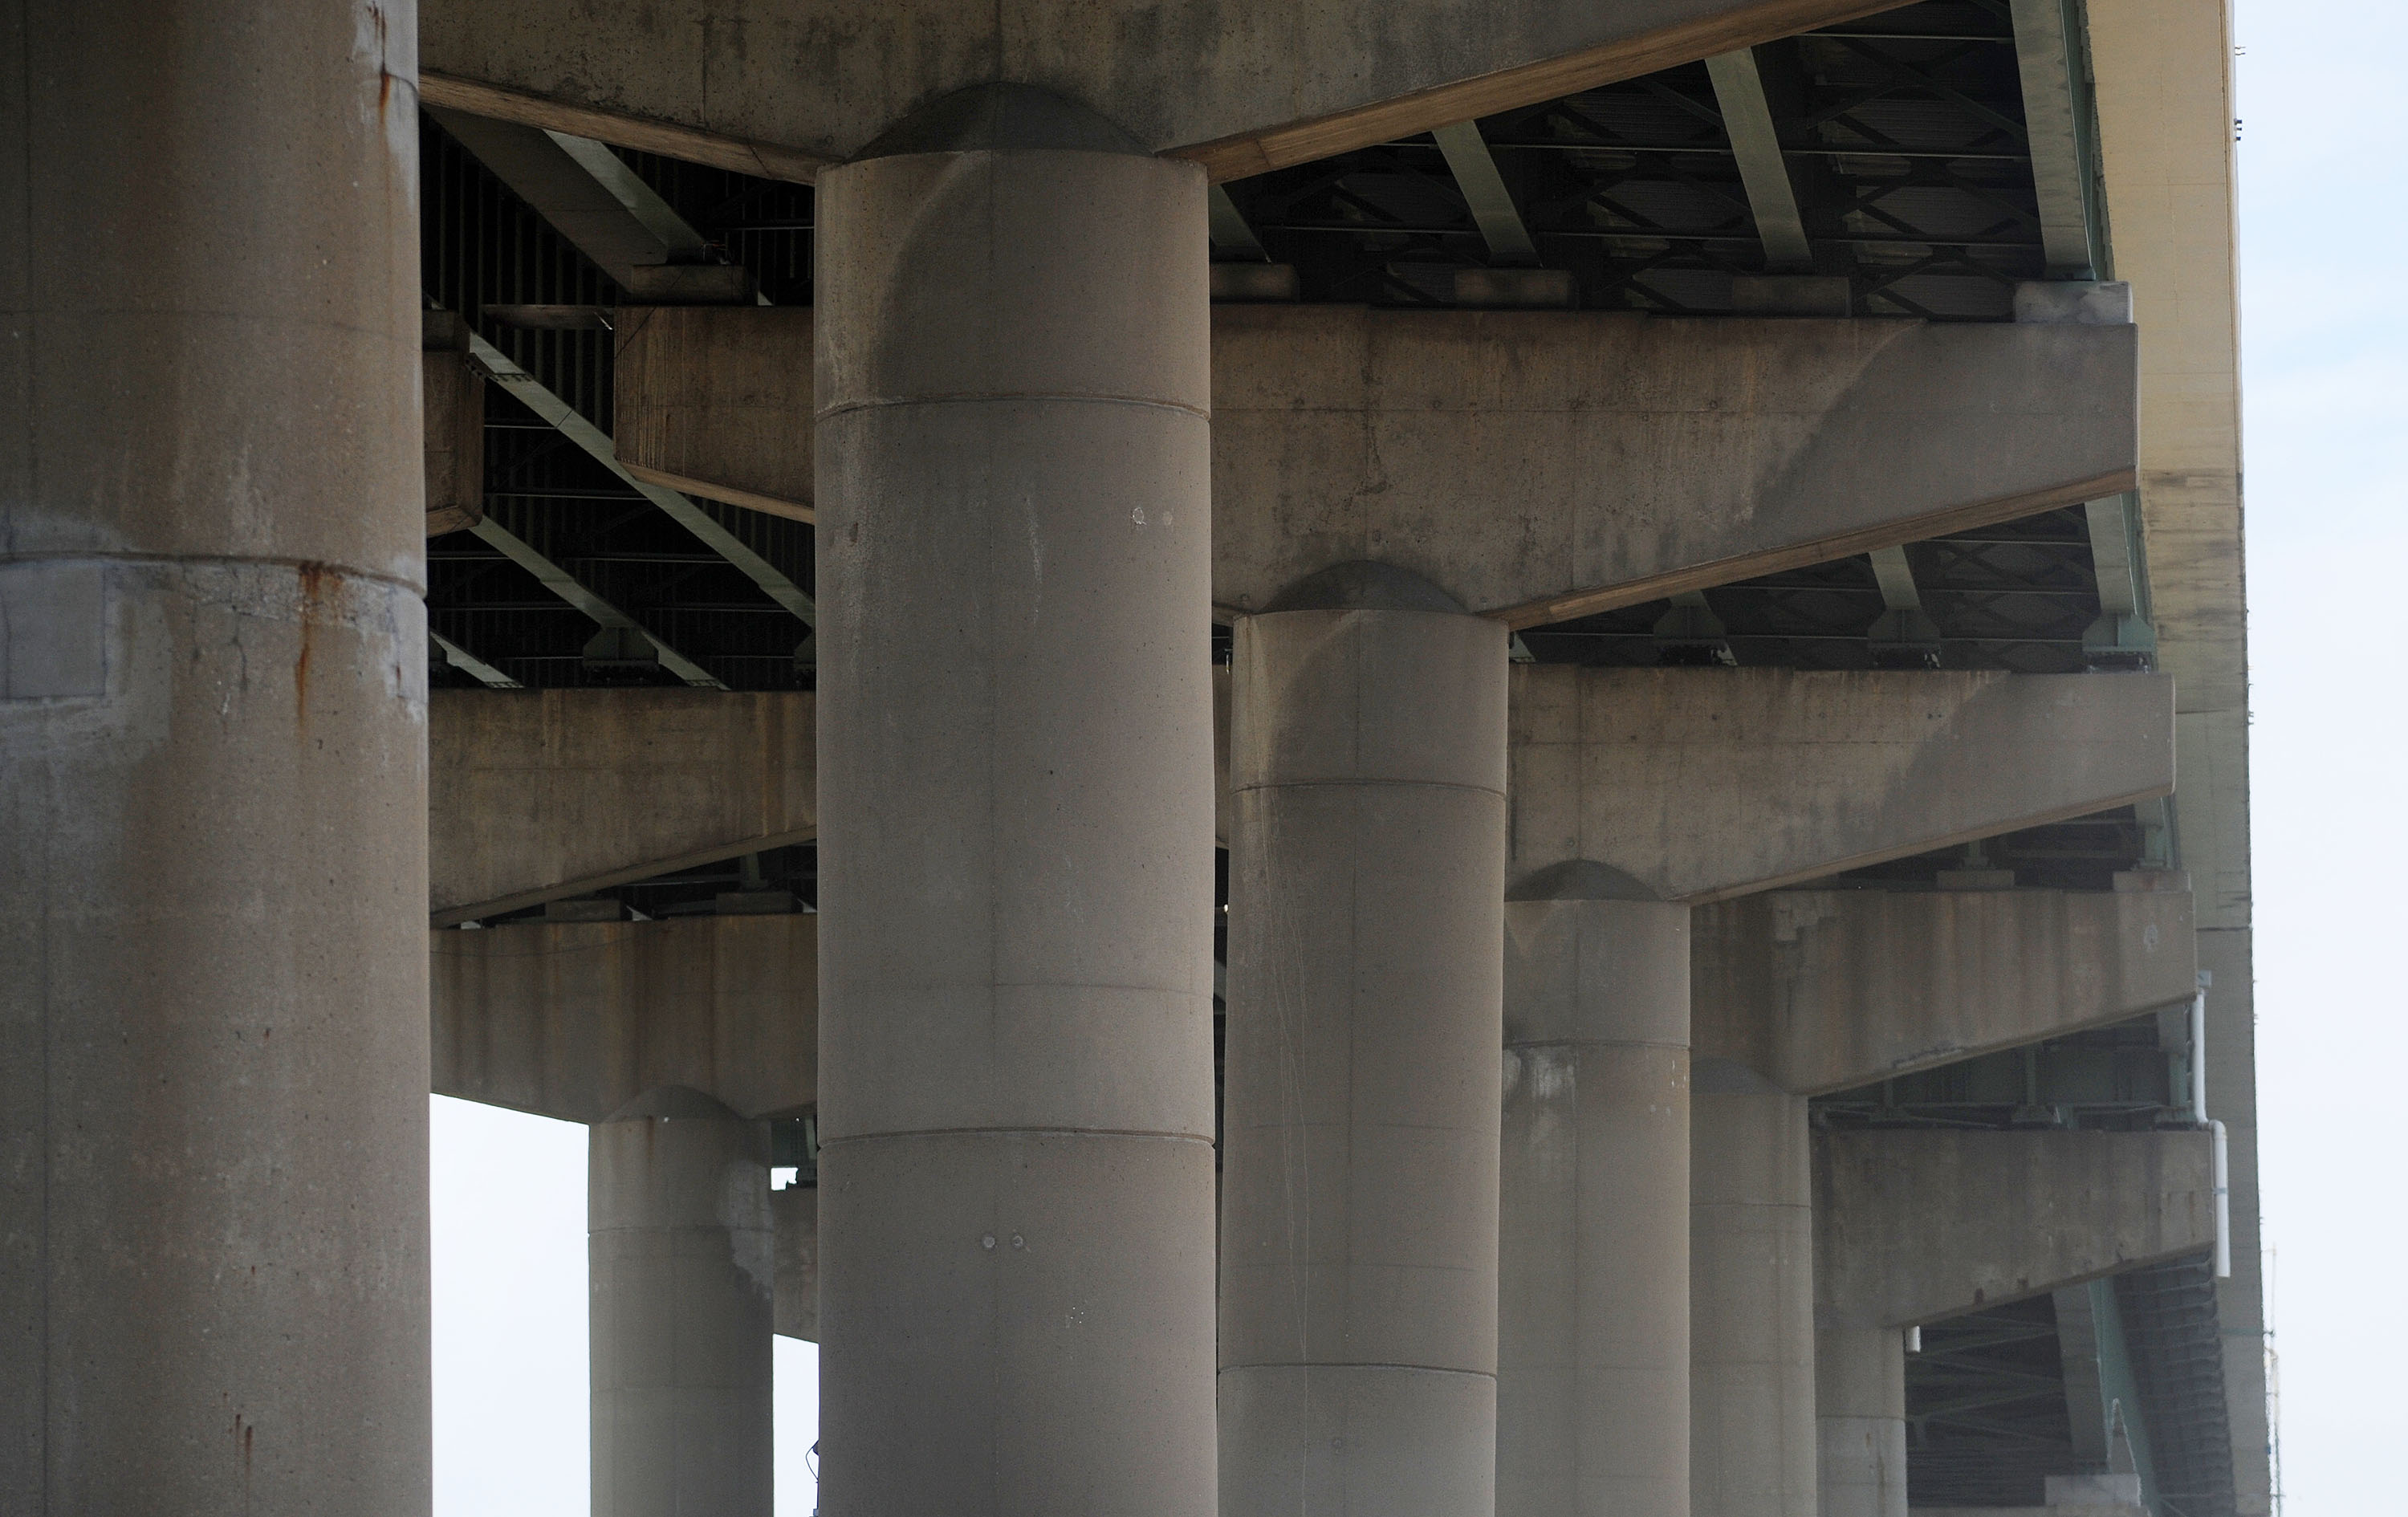 Ray LaHood: New approach needed to repair America's crumbling infrastructure